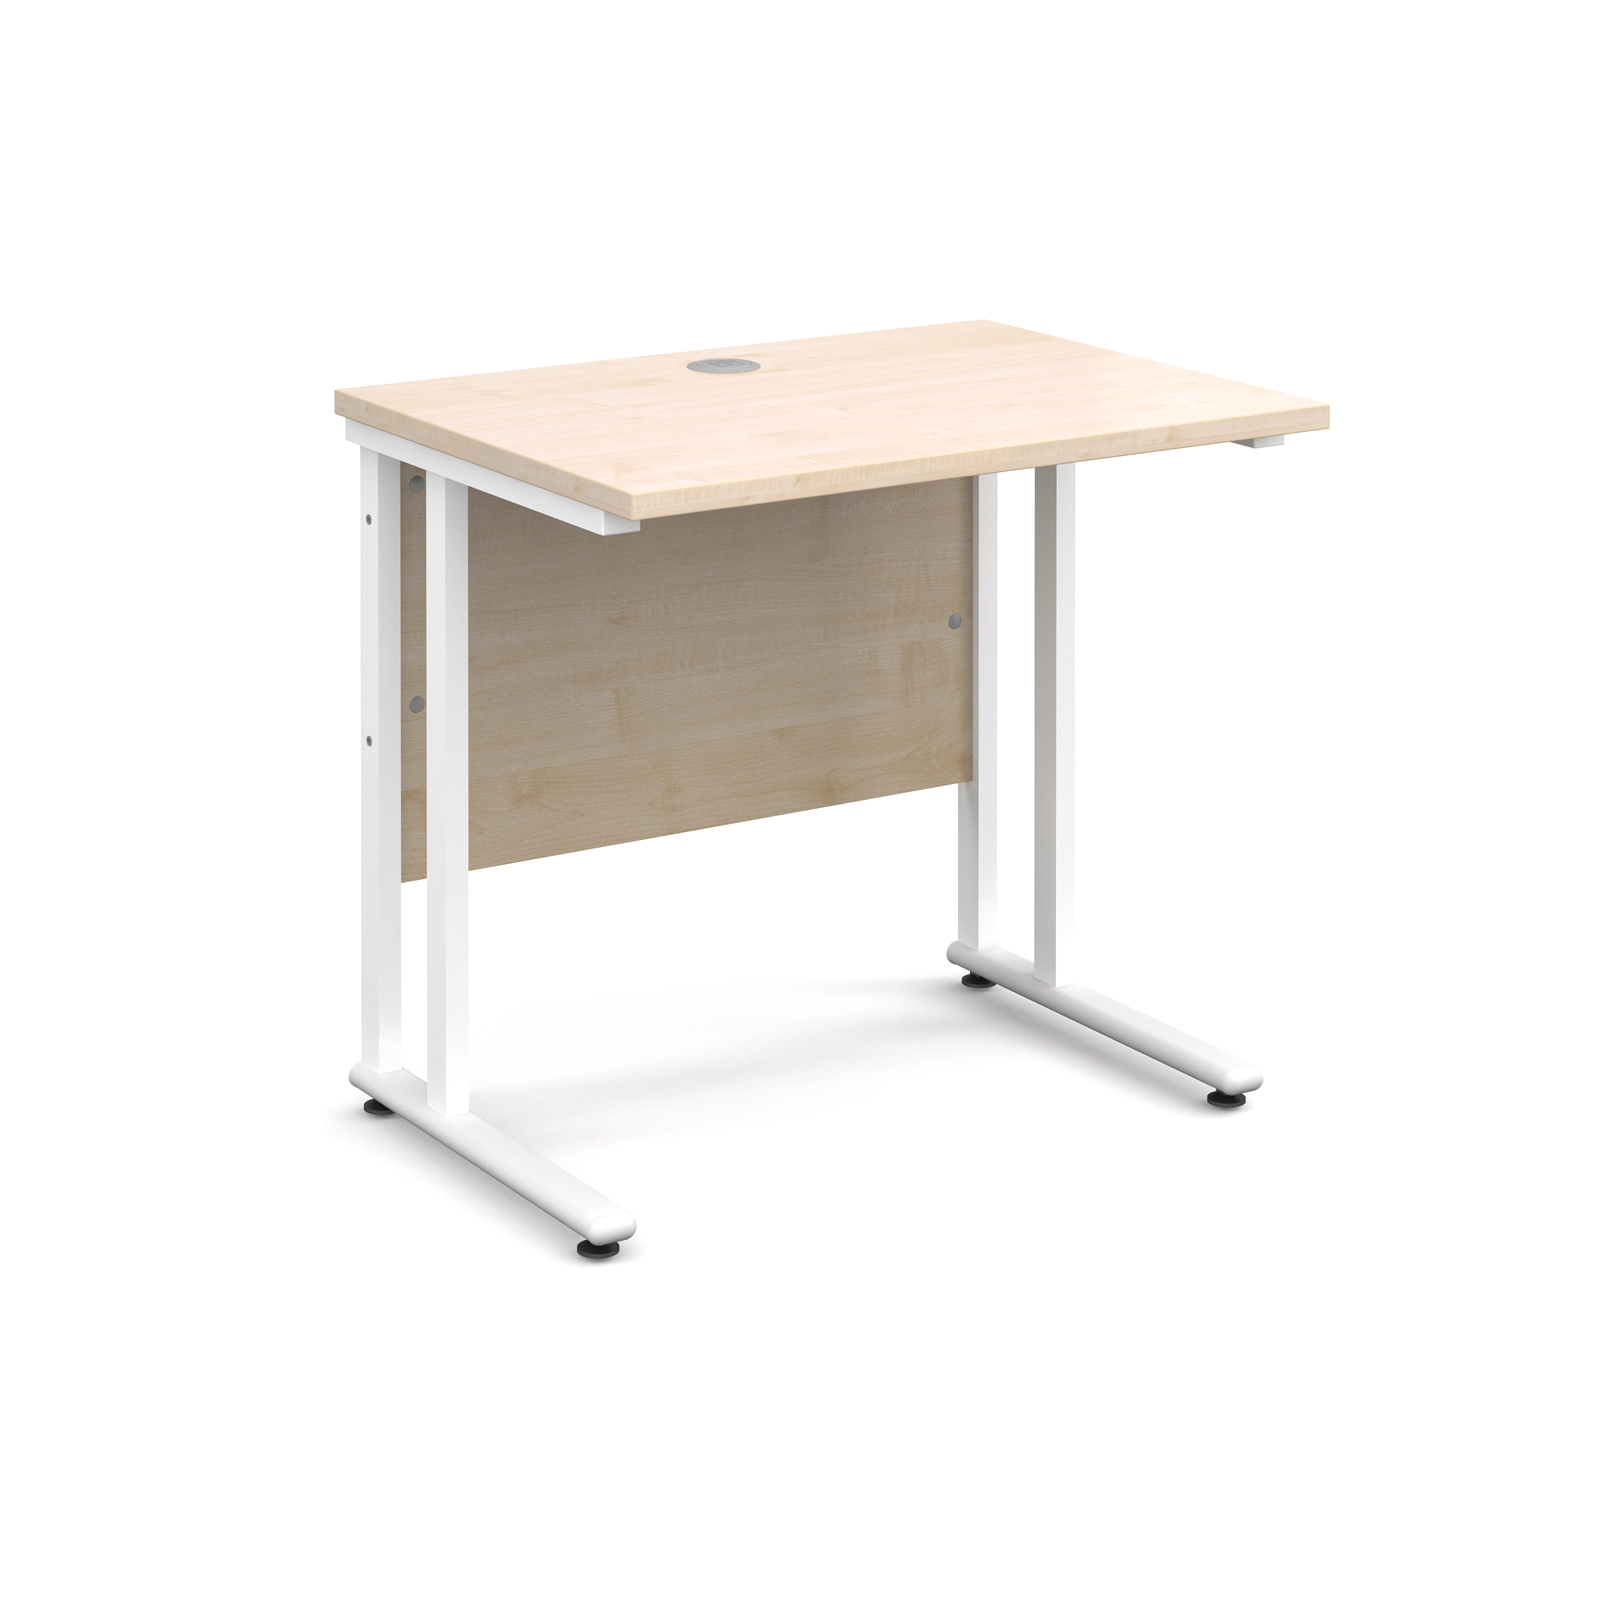 Dams Maestro 25 WL Maple Desk | Straight 600 Deep